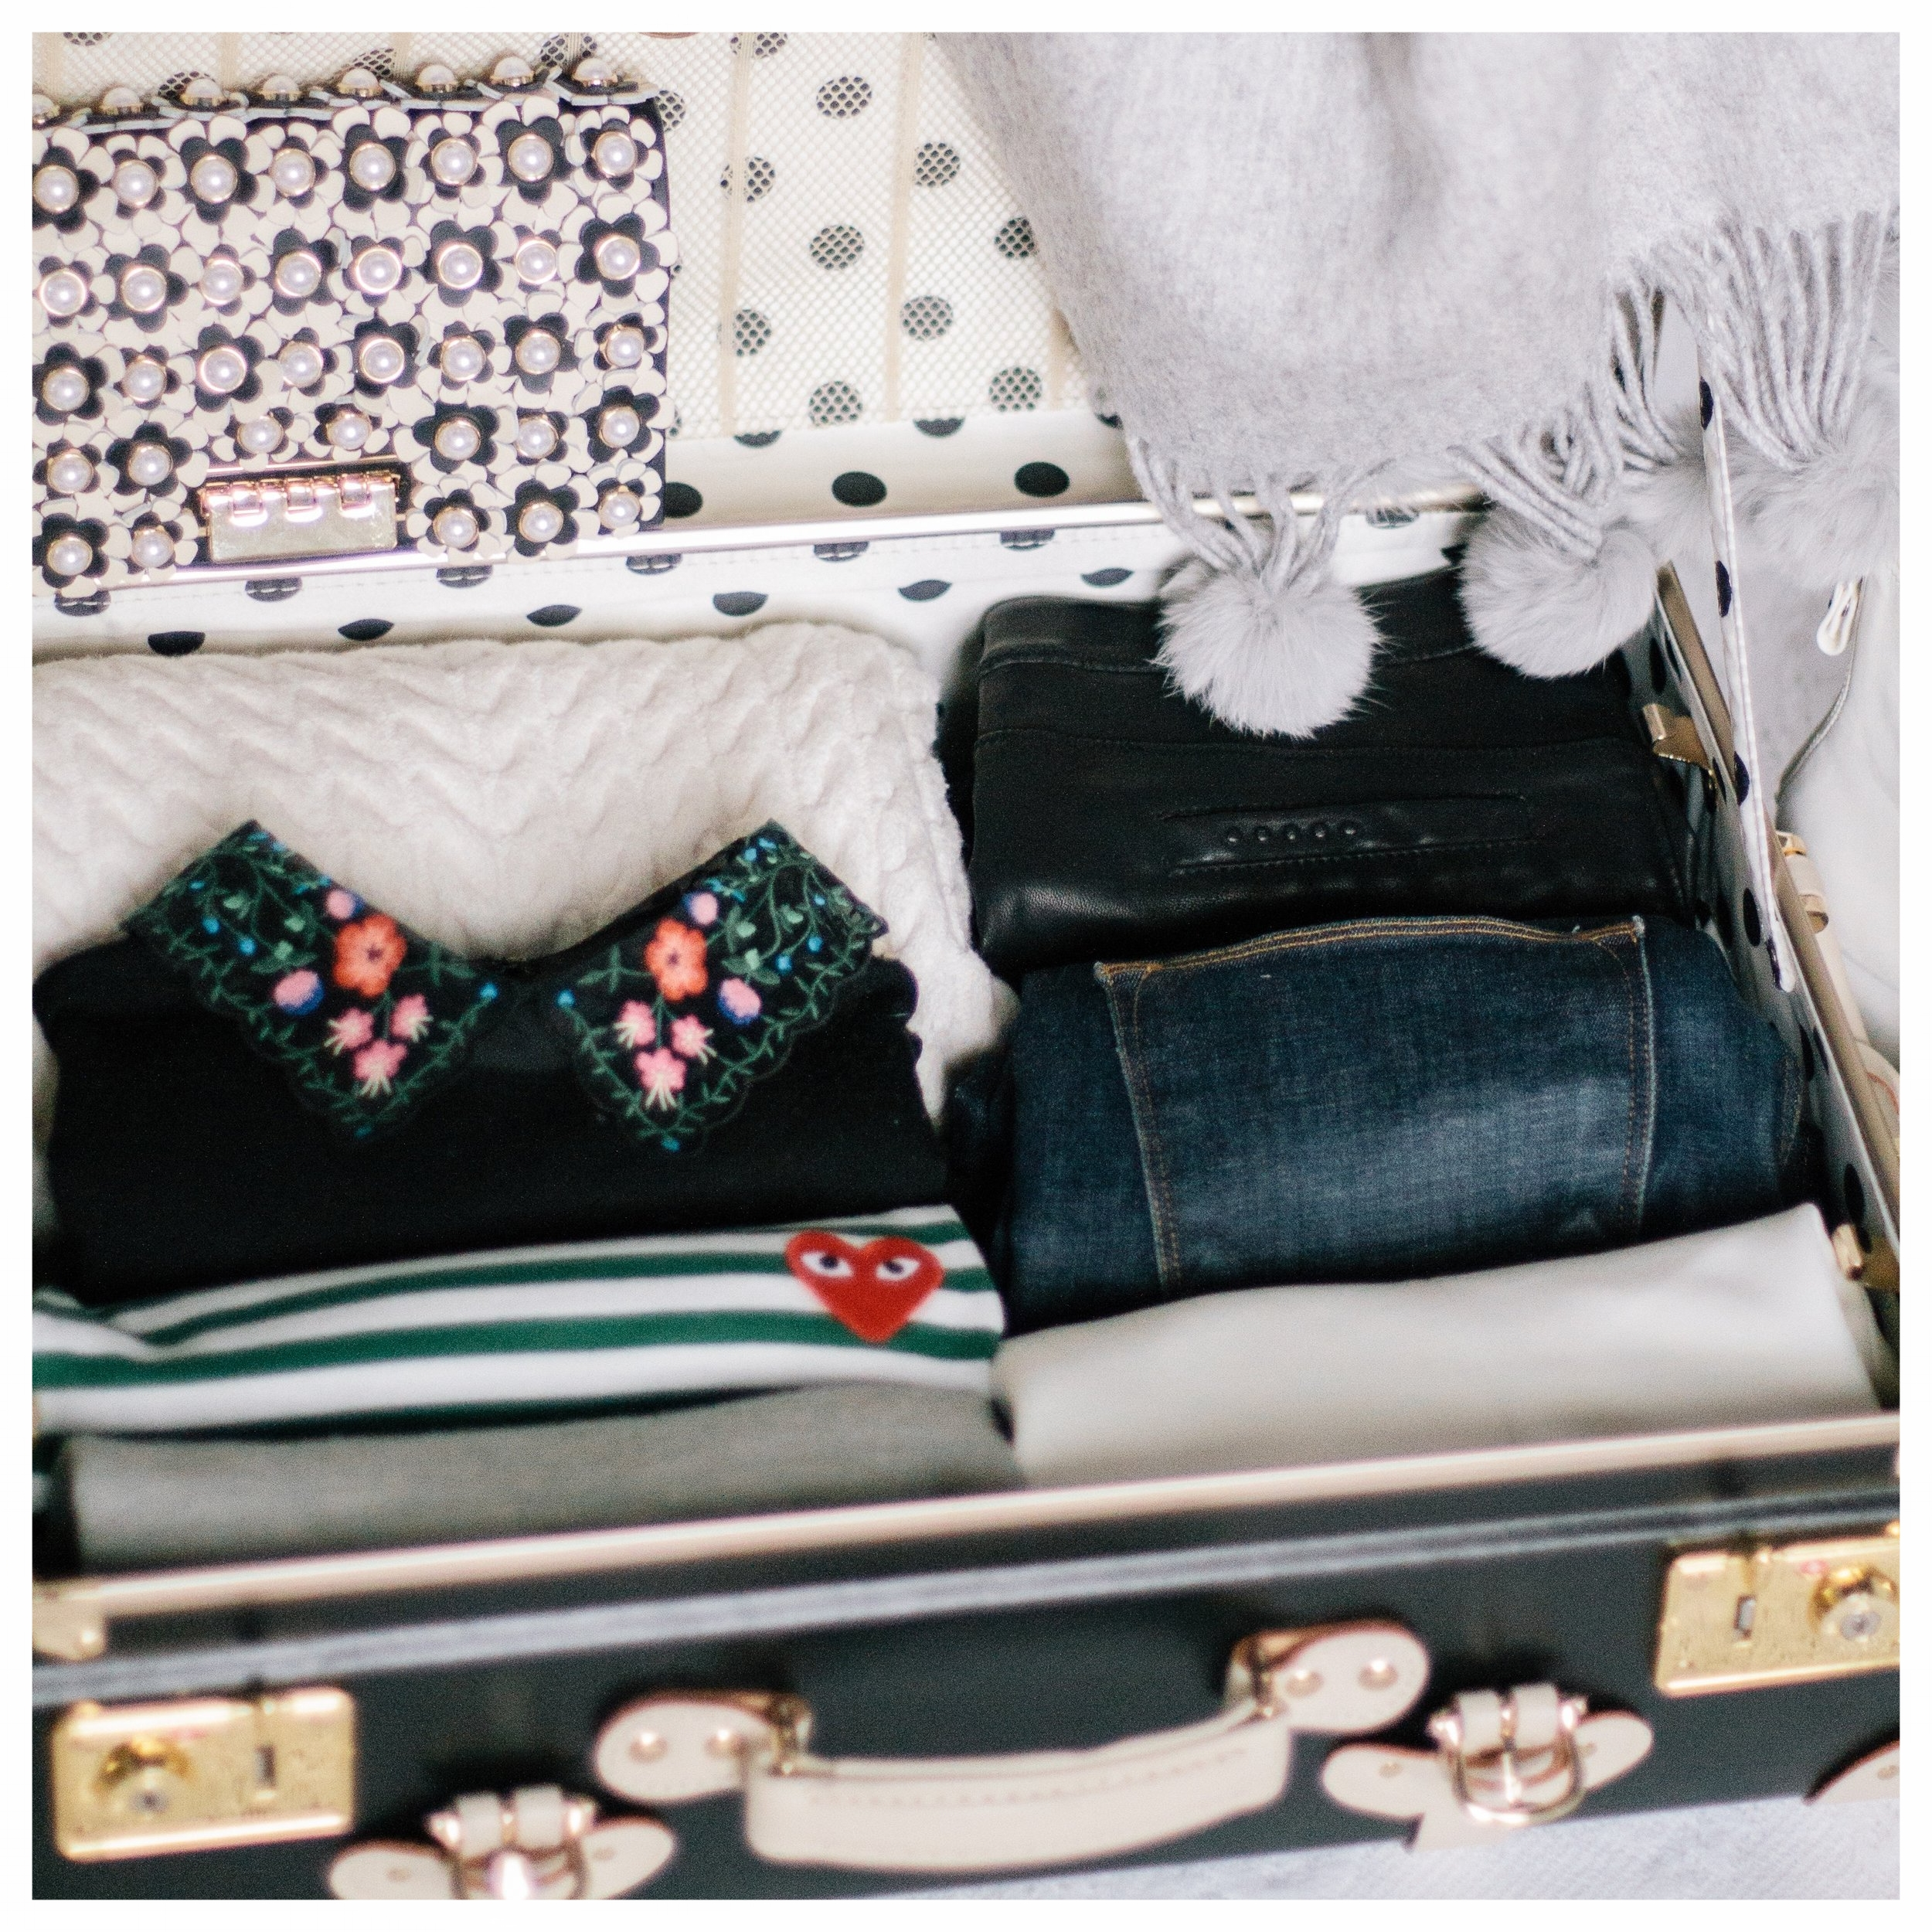 How to Pack A Travel Capsule for Europe: Winter | Monica Francis Design